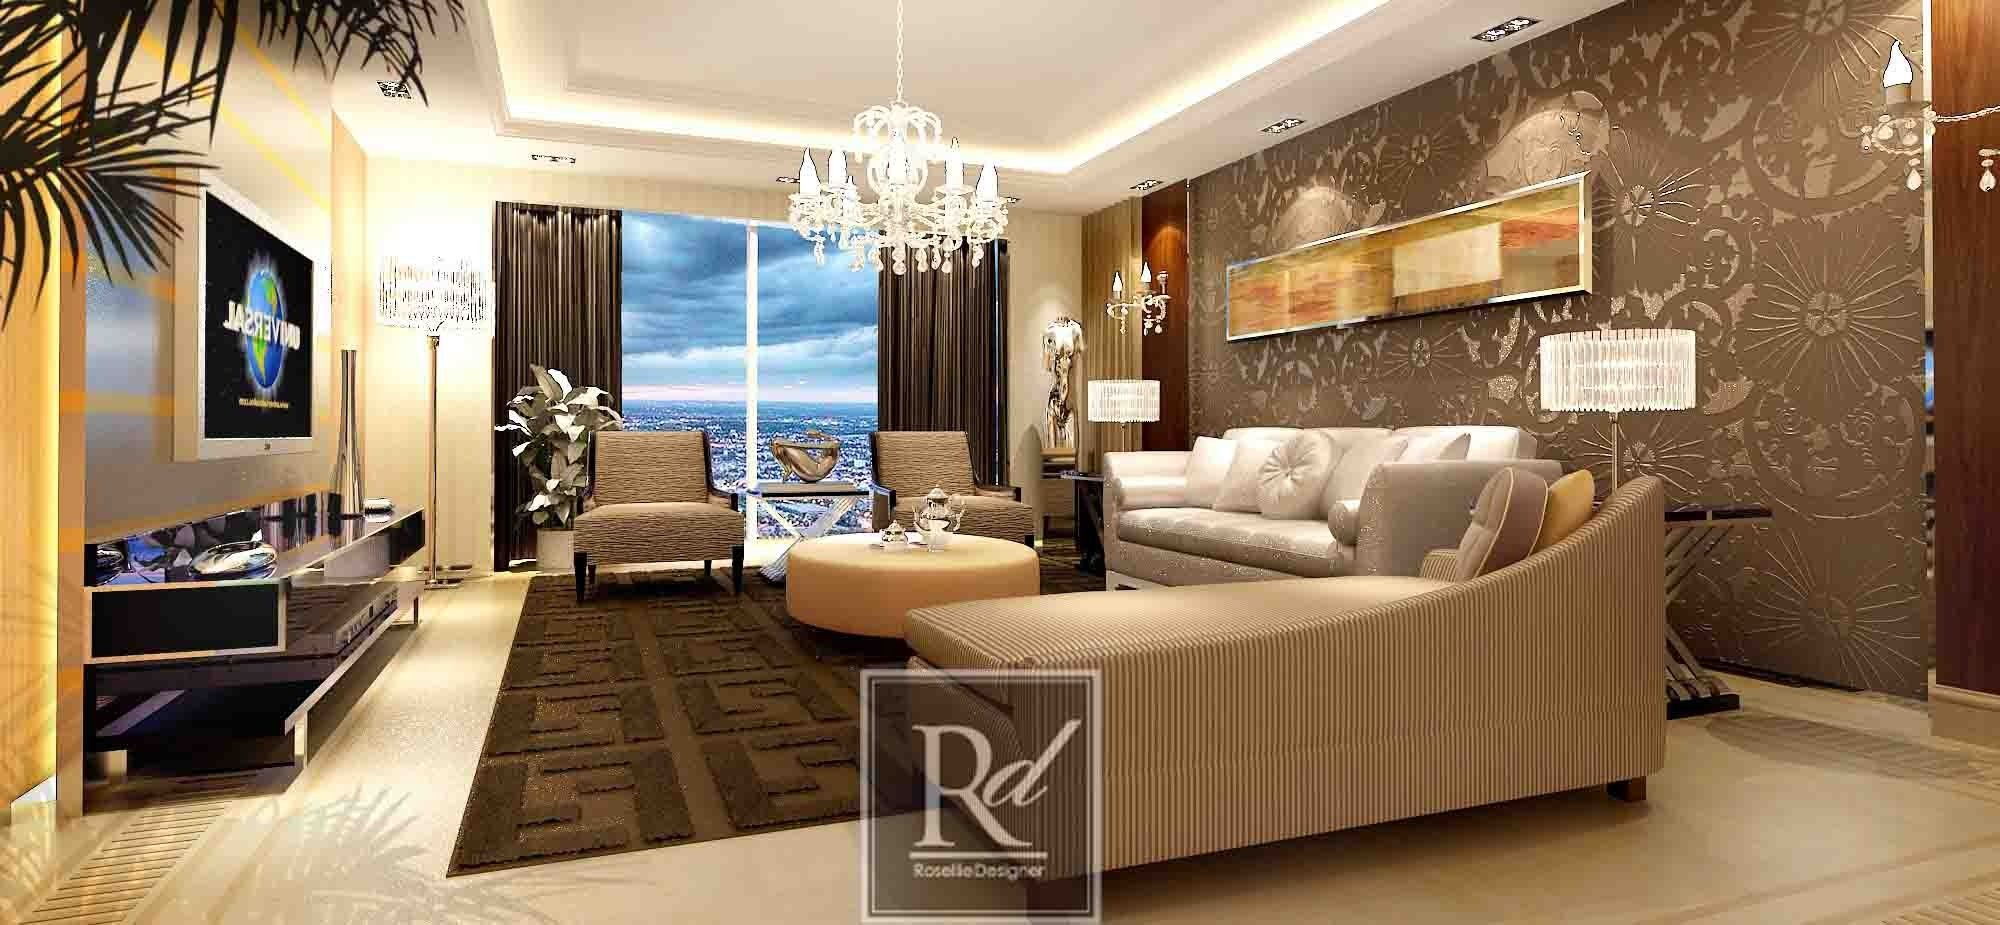 Lovely 3d Rendering Interior Design, 3d Rendering Interior Design Suppliers And  Manufacturers At Alibaba.com